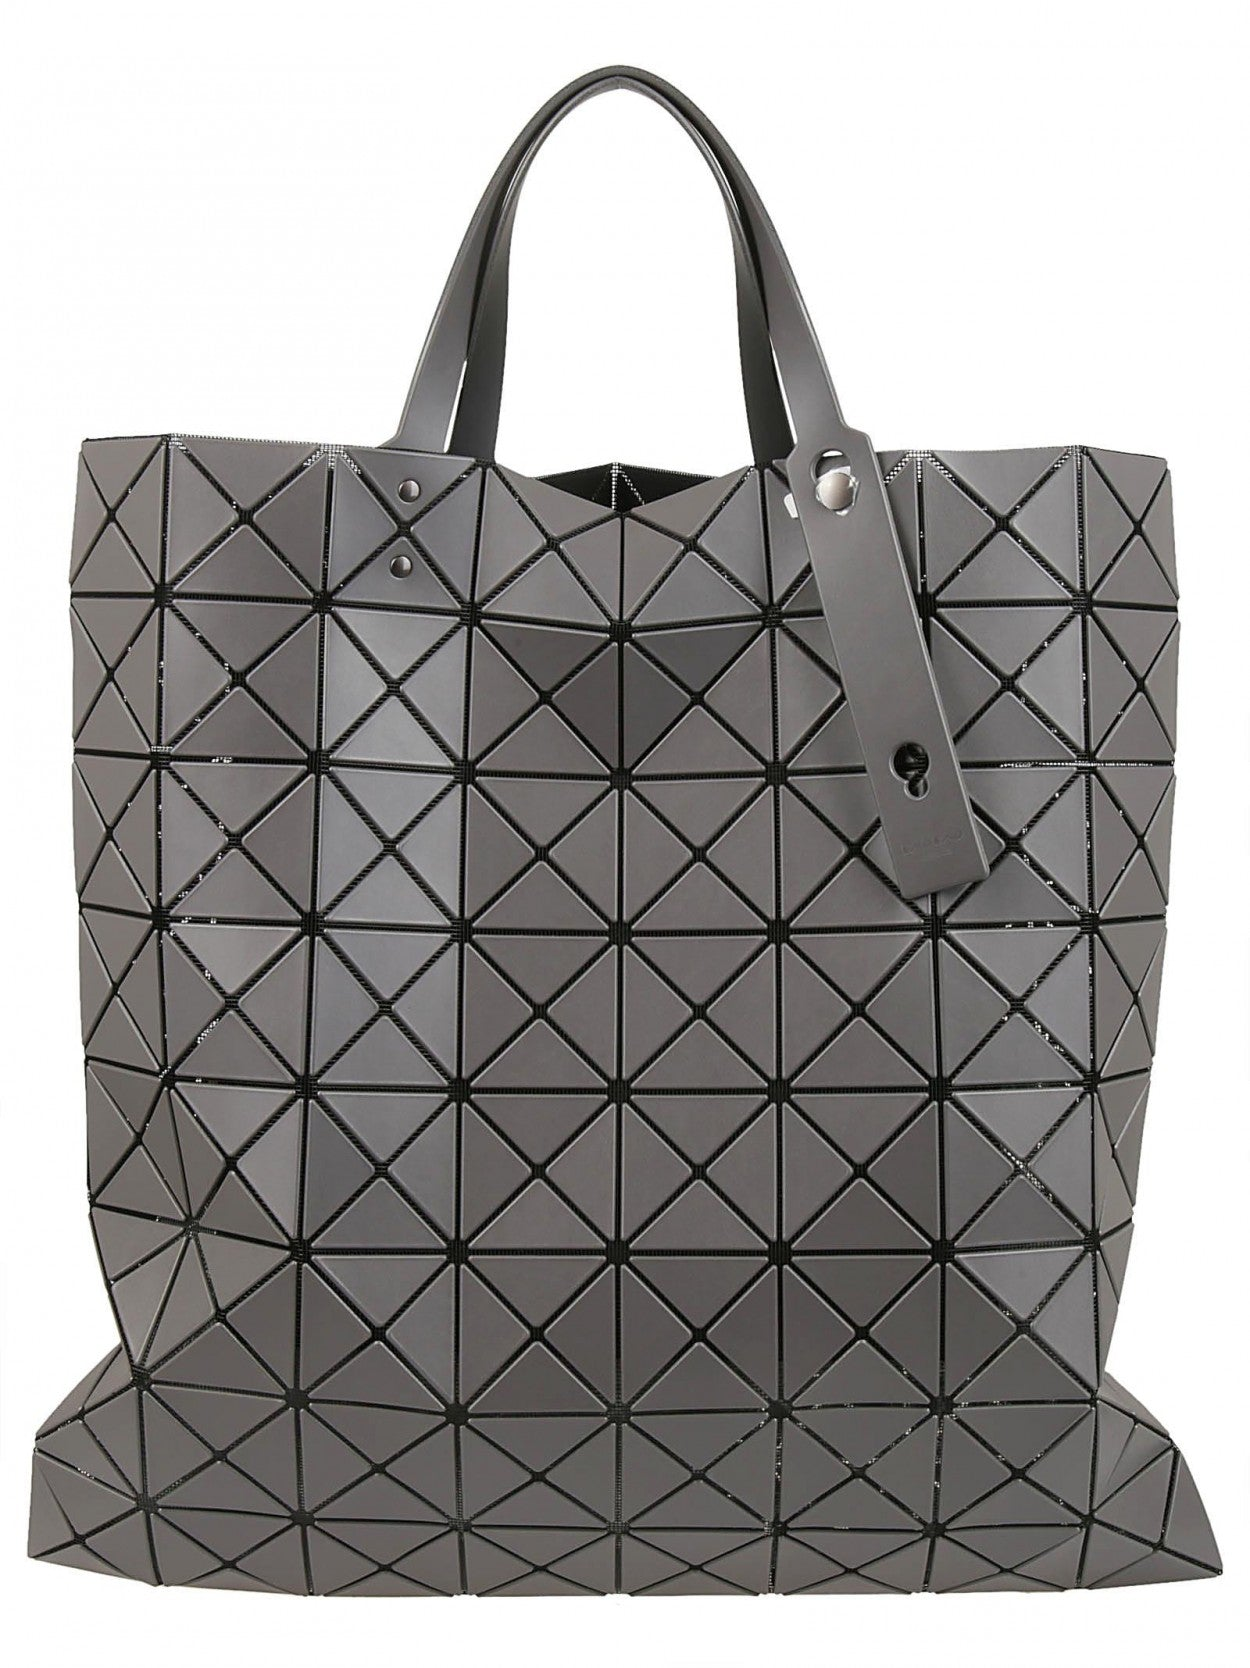 cdad46714bc8 Bao Bao Issey Miyake Lucent Matte Tote In Charchoal